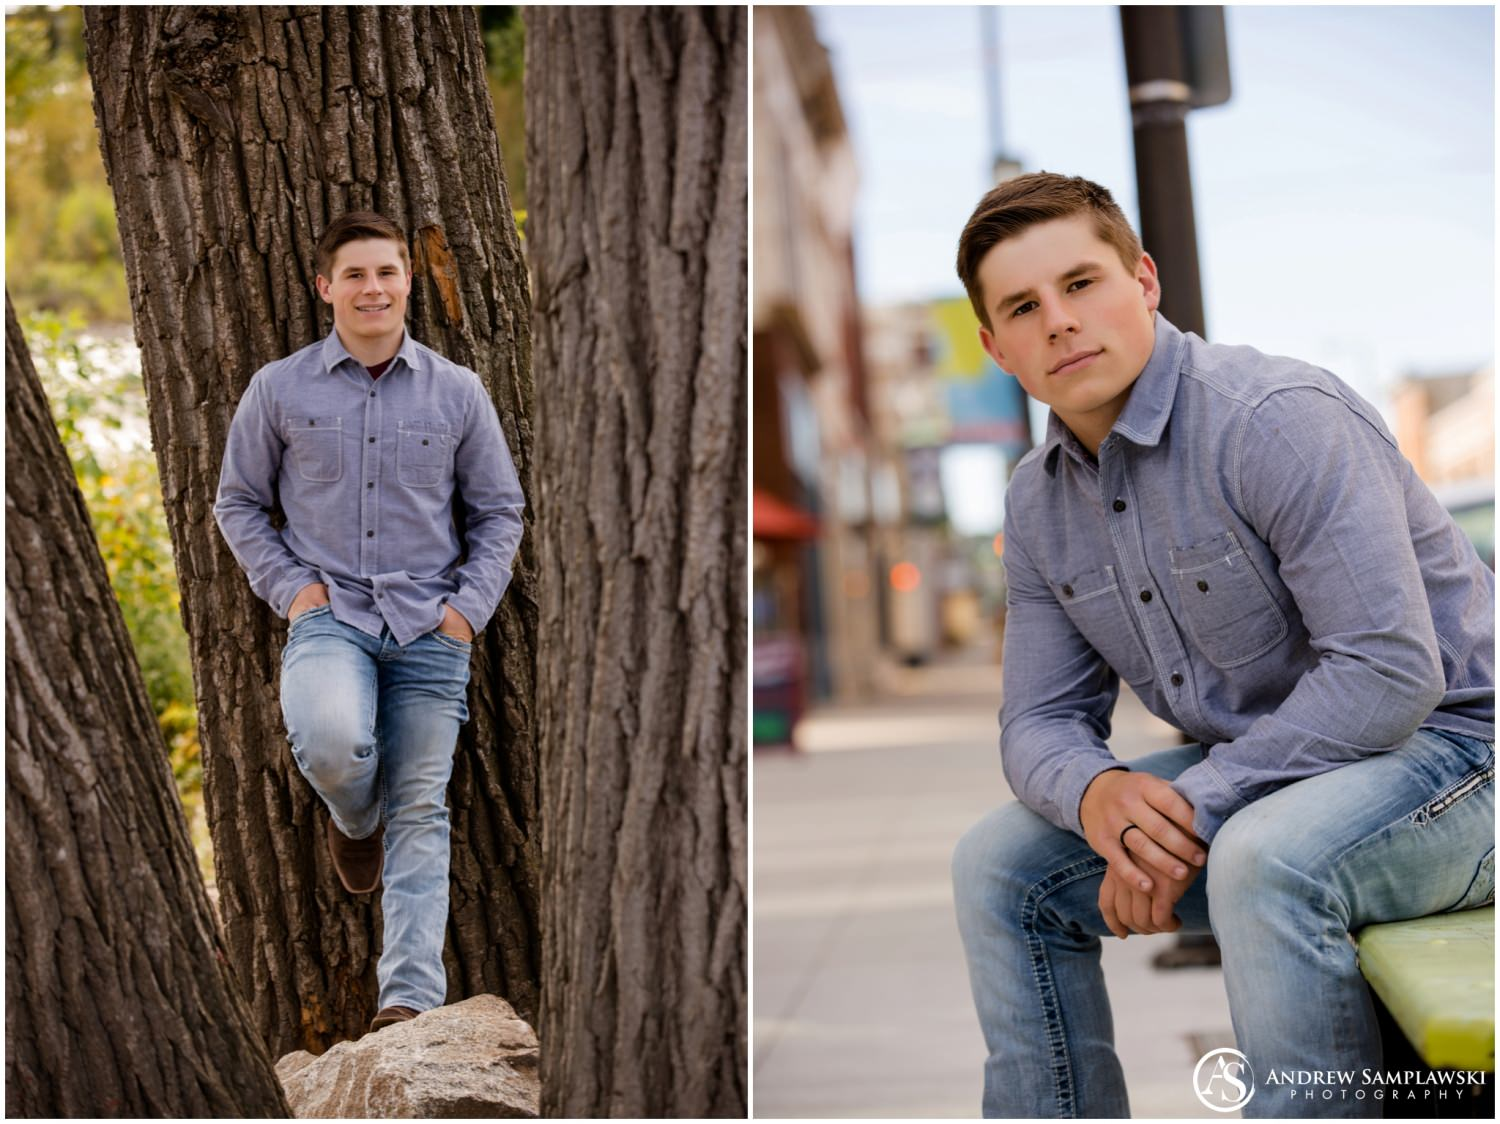 Chippewa Falls senior portraits andrew samplawski photography